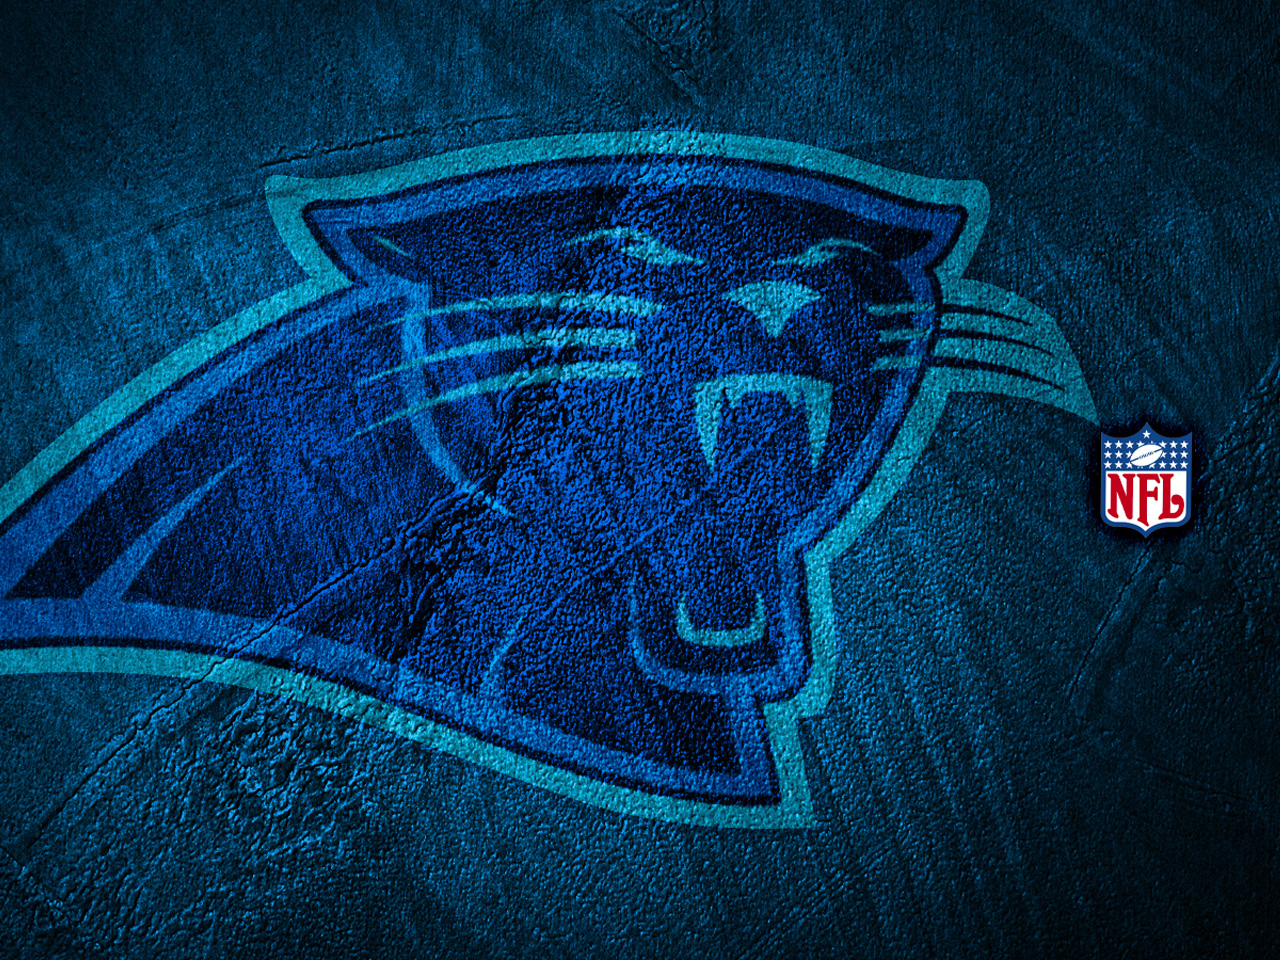 South Carolina Games Panthers Nfl Football 1088009 With Resolutions 1280x960